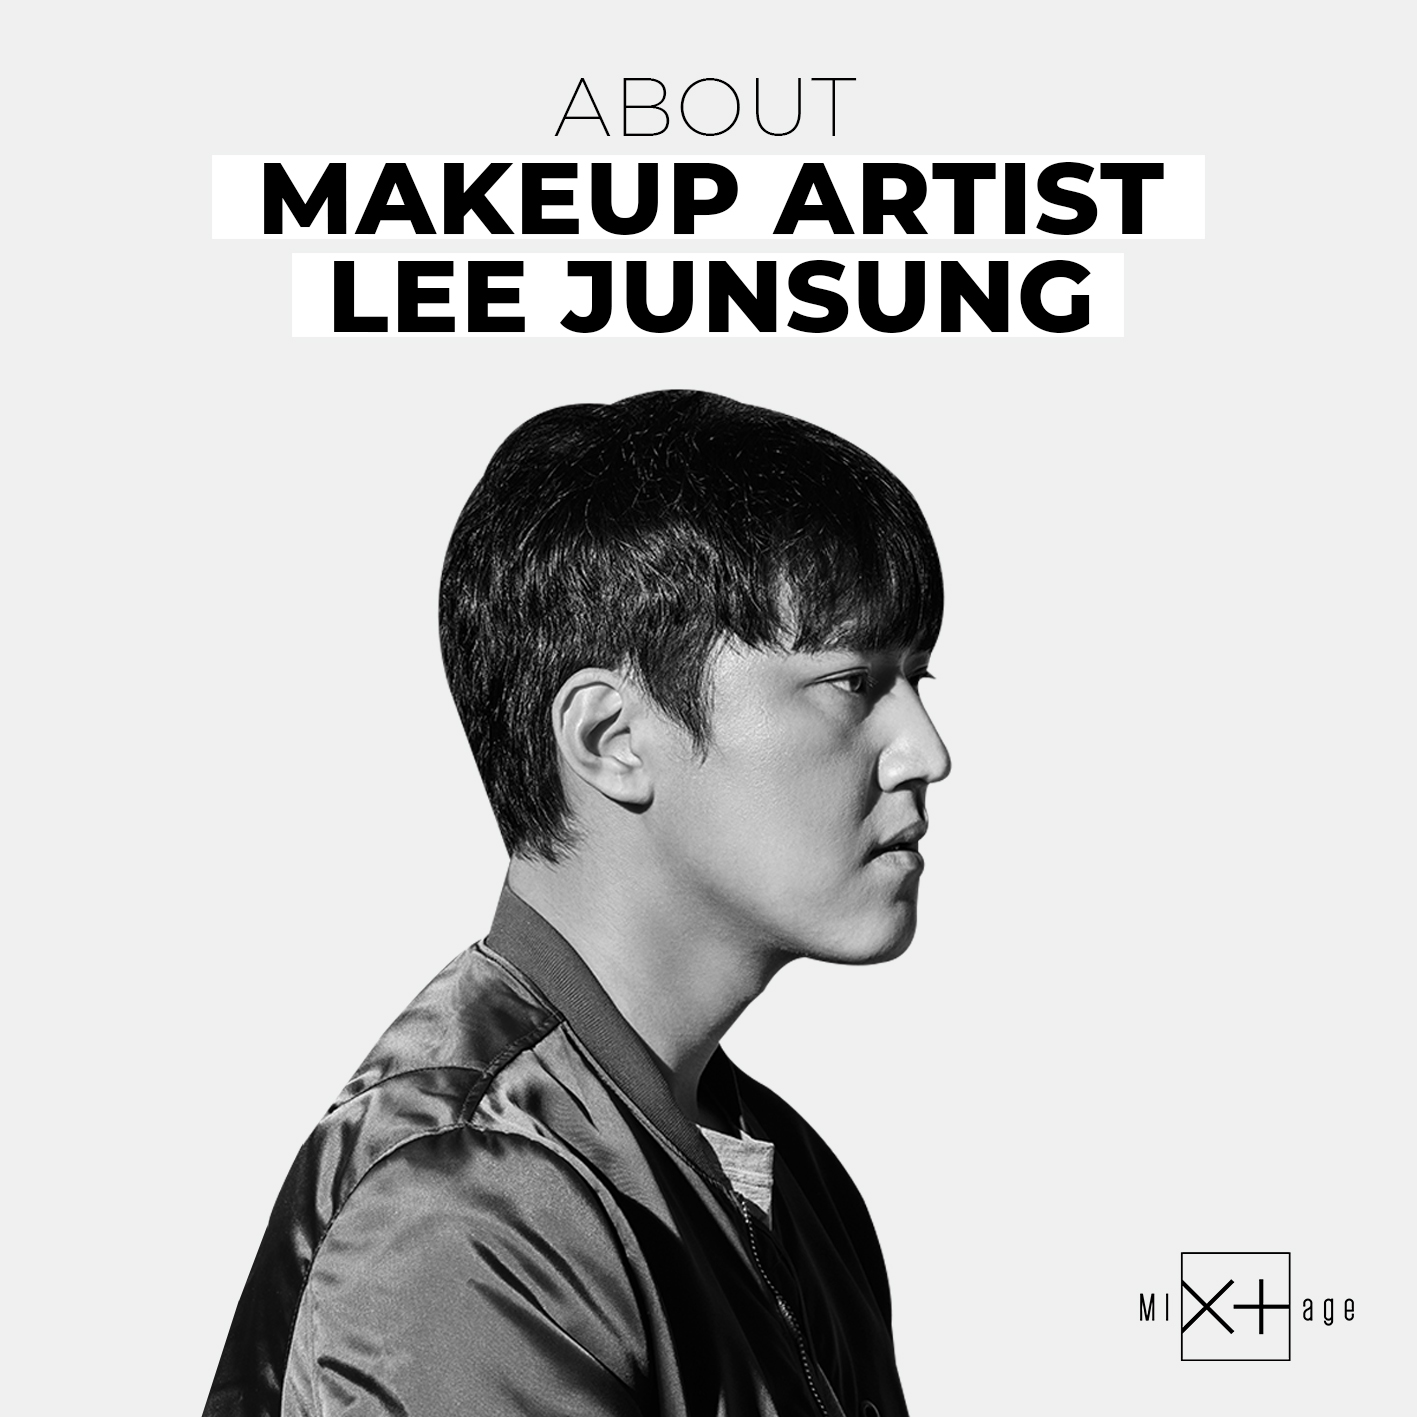 [Mixtage] about LEE JUNSUNG